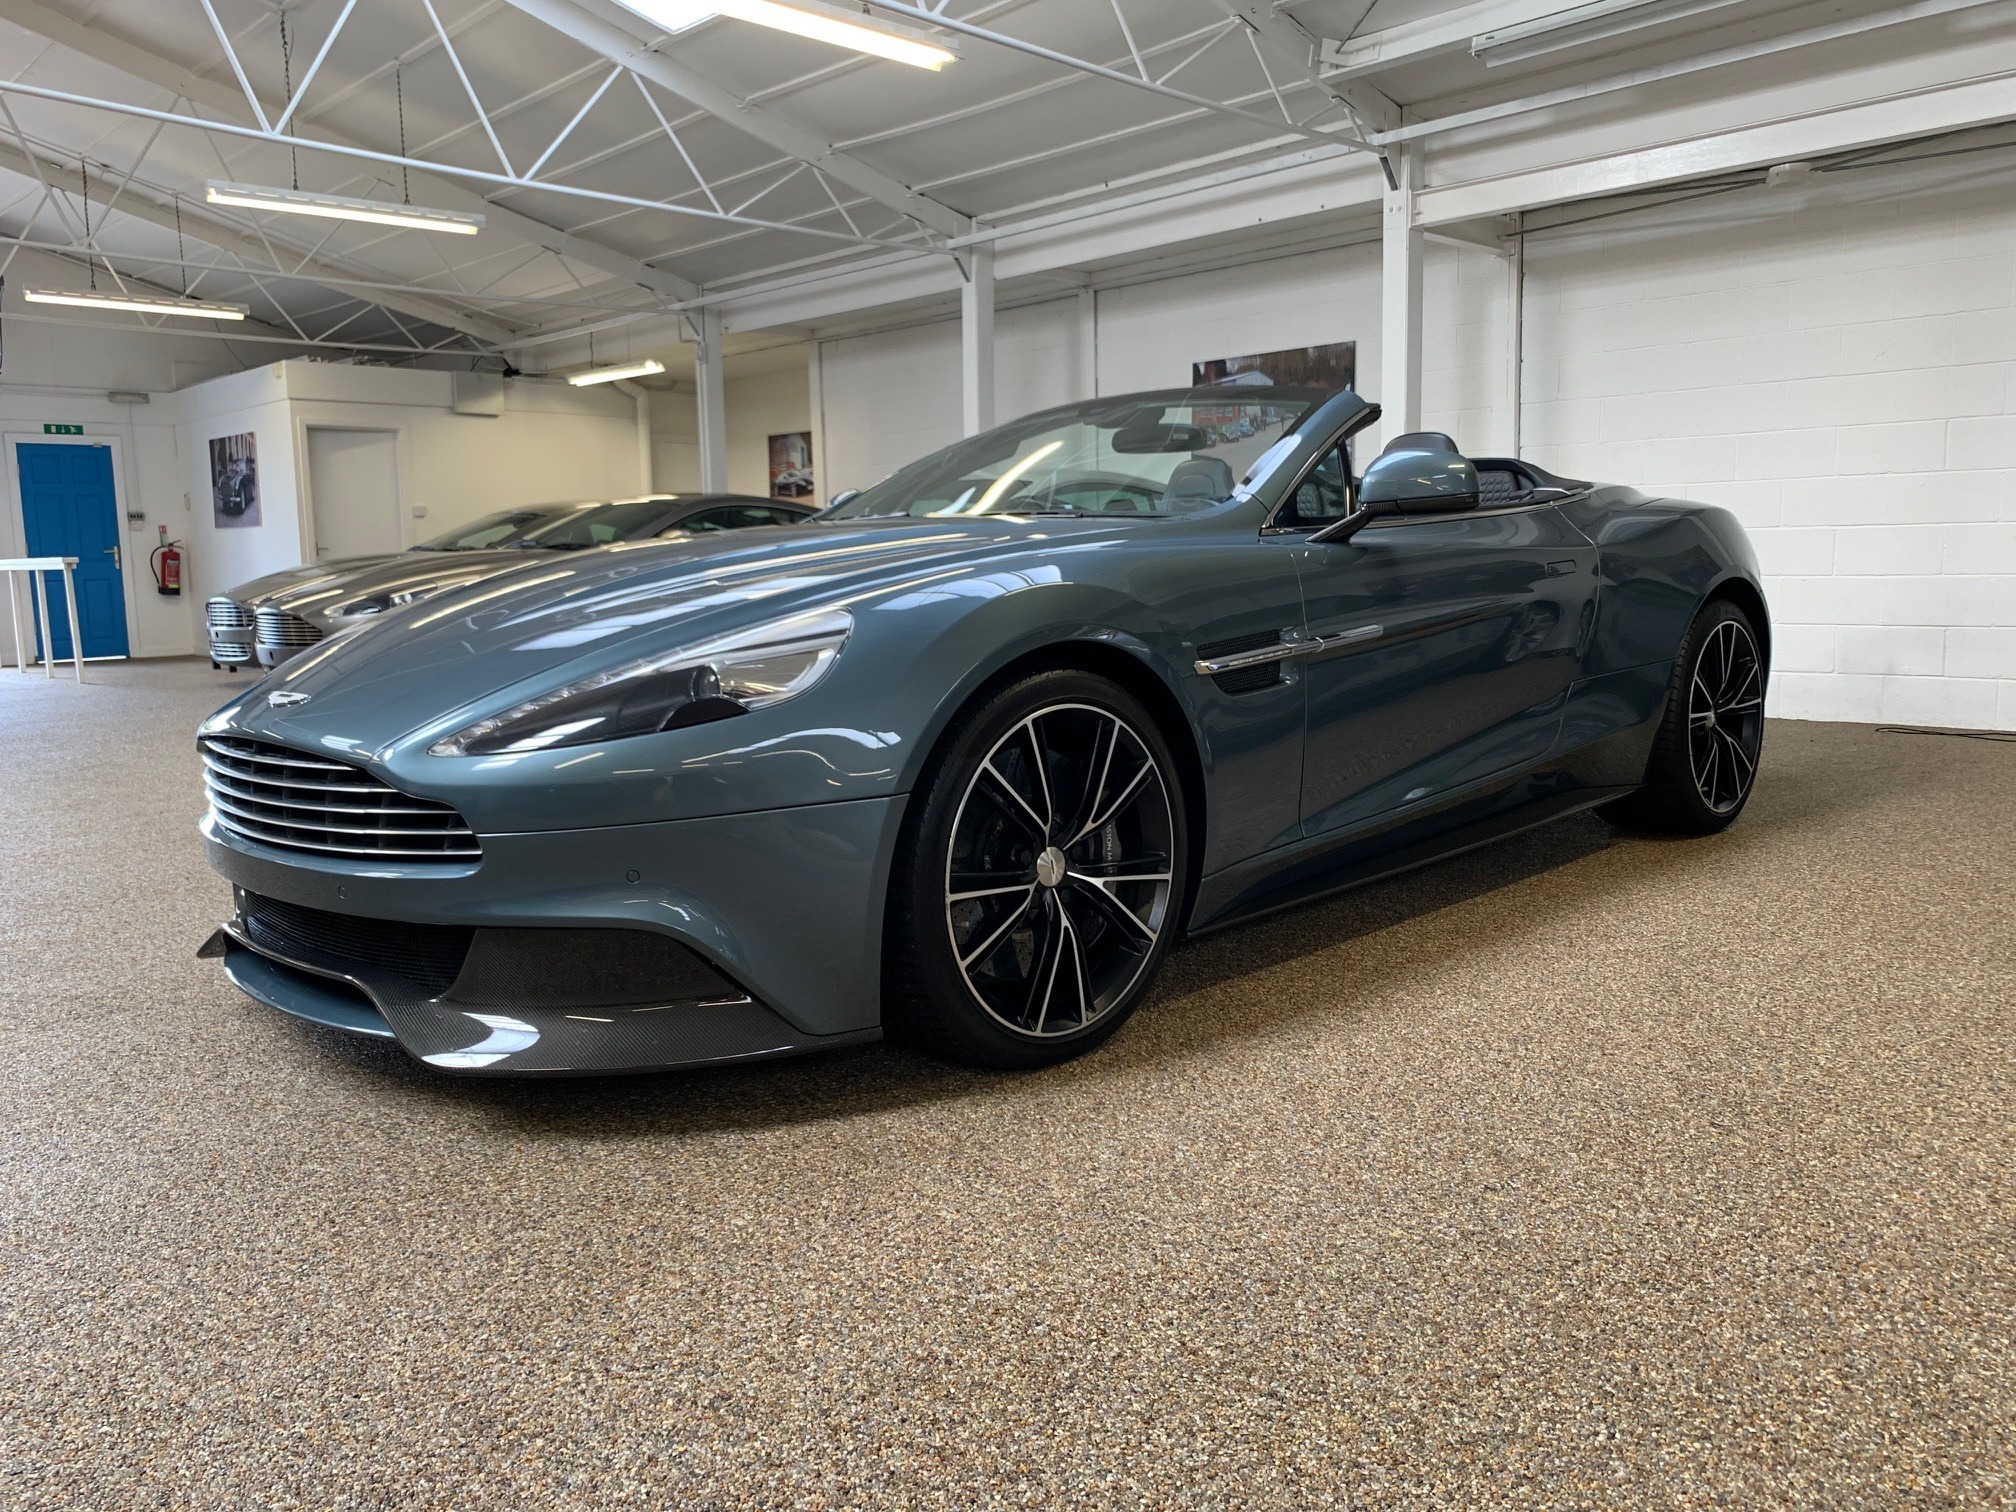 Aston Martin Vanquish Volante for sale